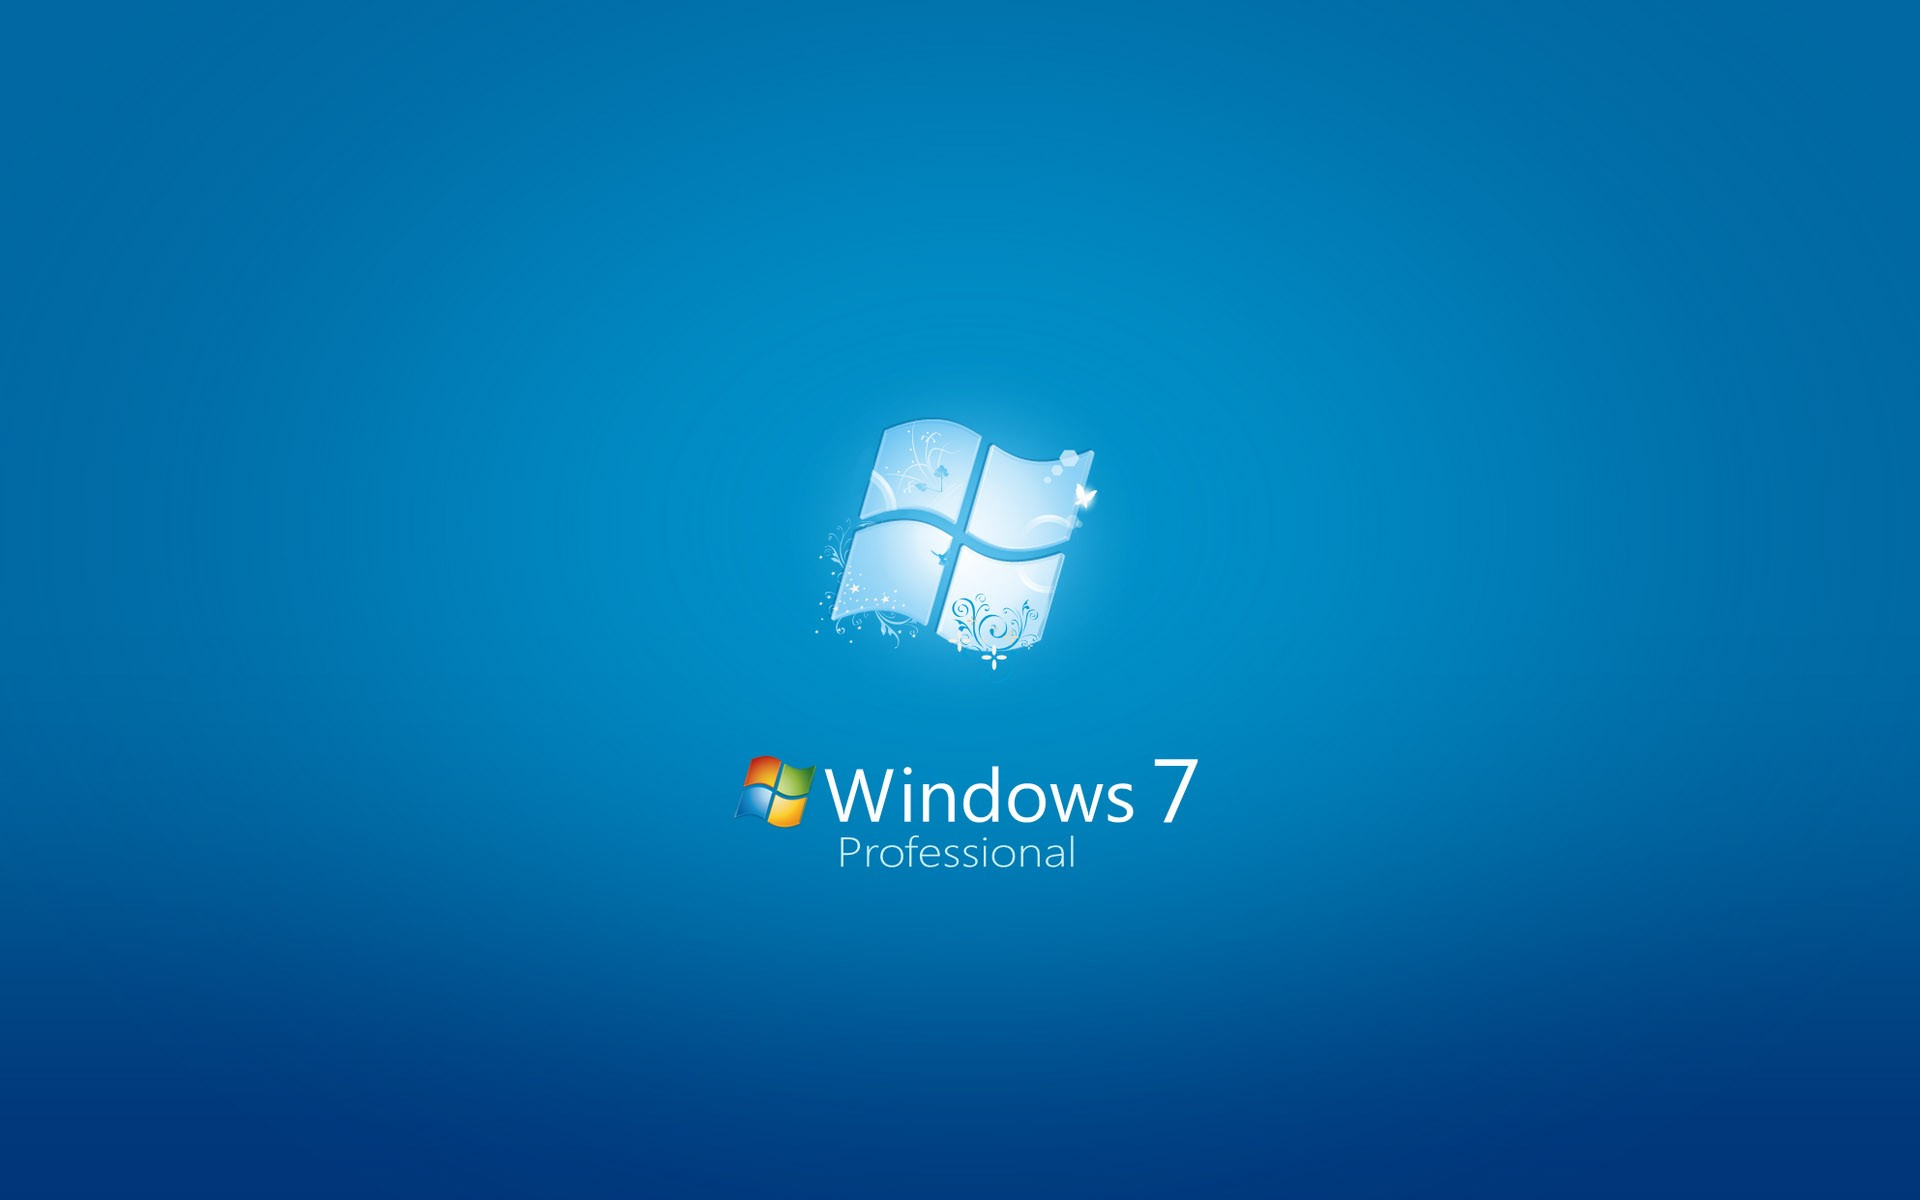 1920x1200 win7 professional desktop pc and mac wallpaper for Window 7 professional